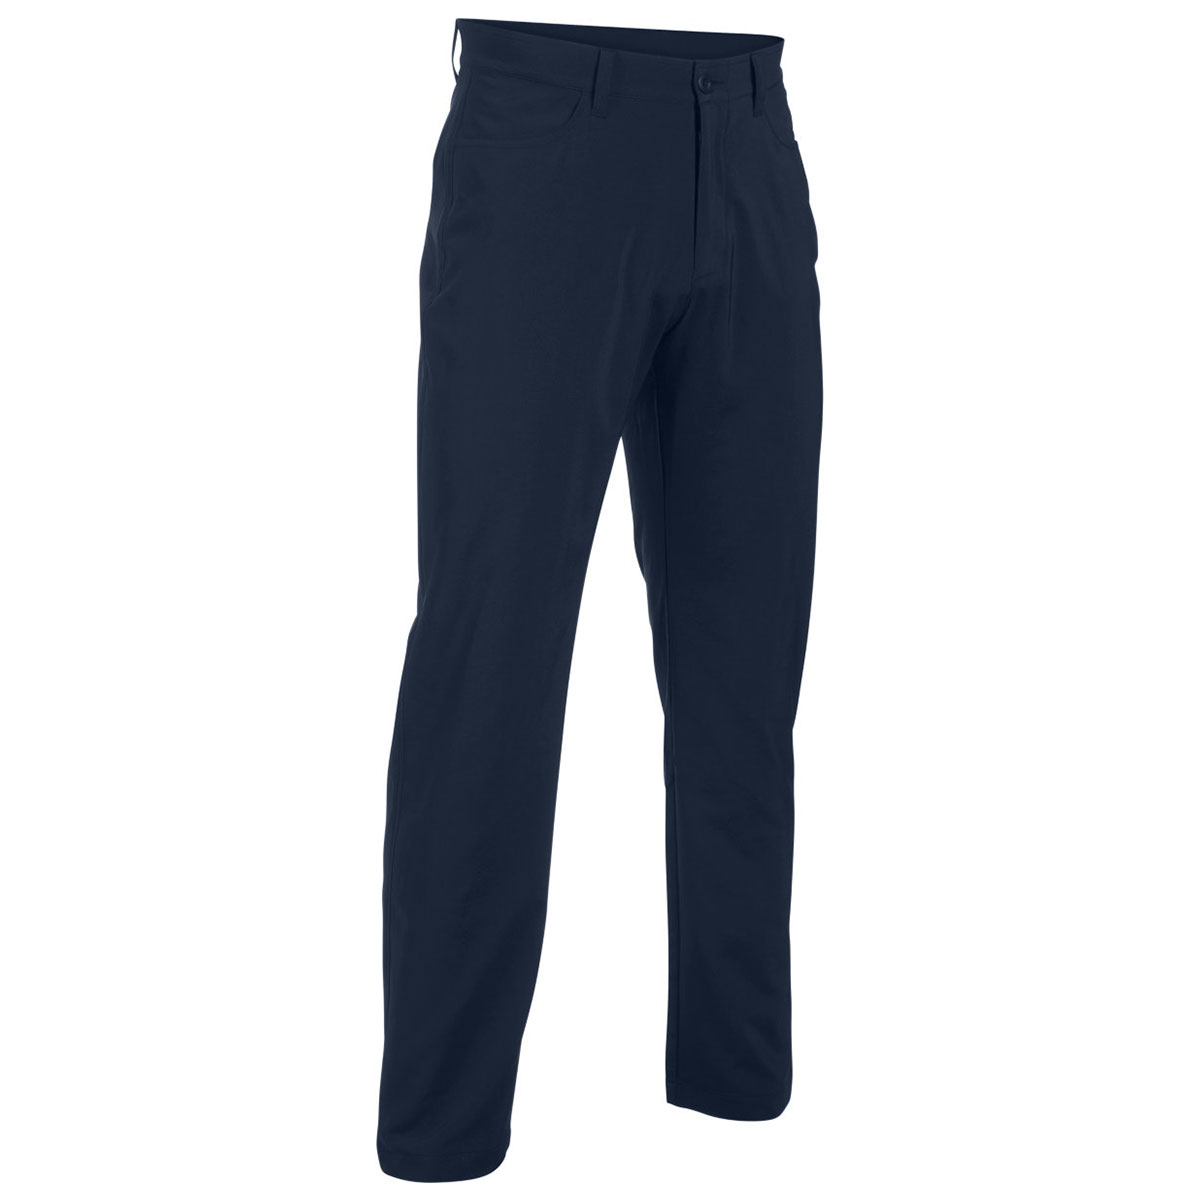 Under-Armour-Mens-Tech-Pant-Soft-Stretch-Golf-Trousers-31-OFF-RRP thumbnail 4